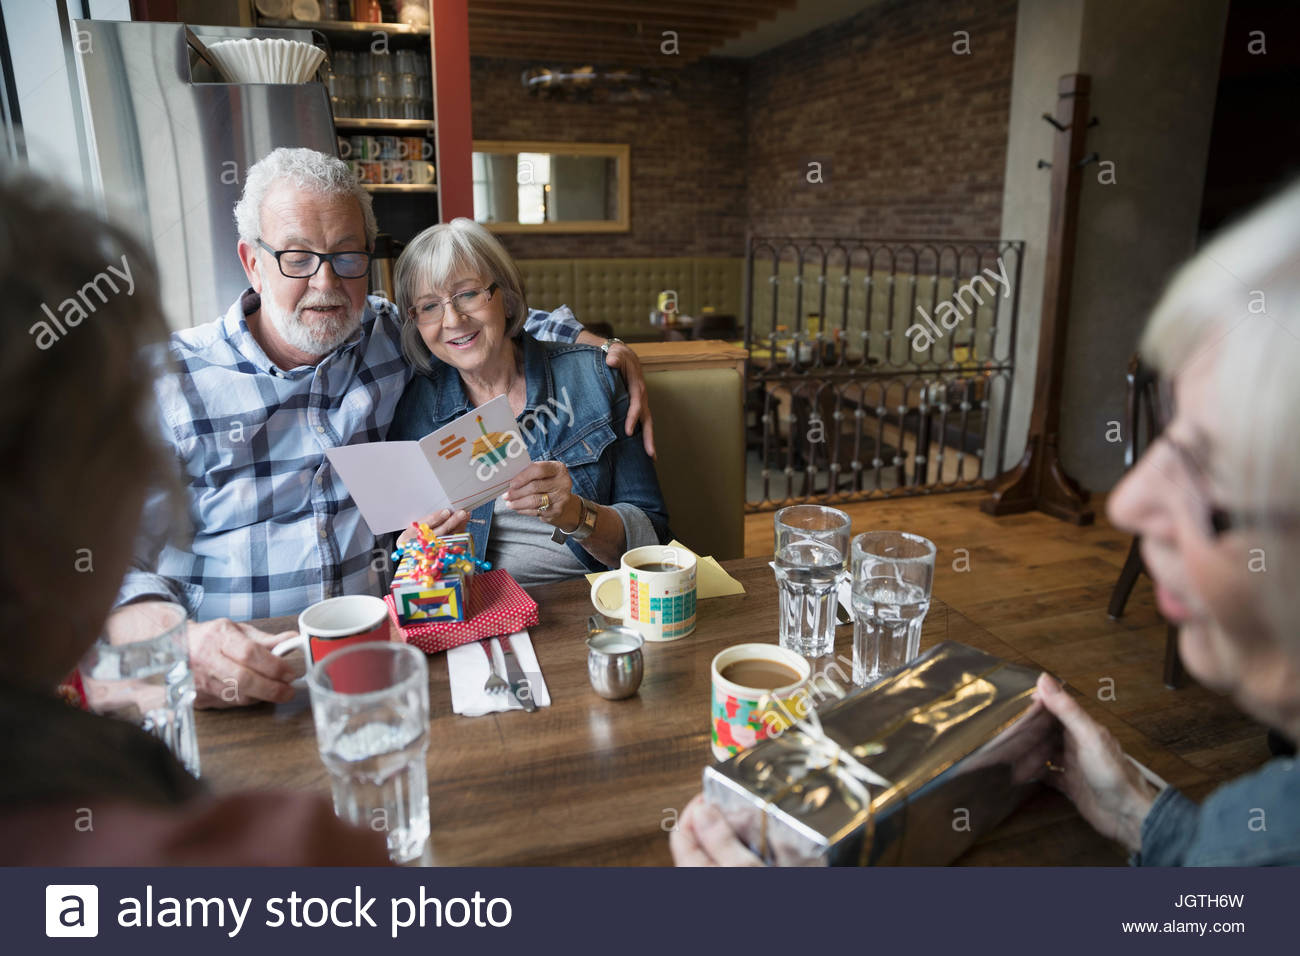 Senior friends celebrating birthday, reading greeting card in diner booth - Stock Image